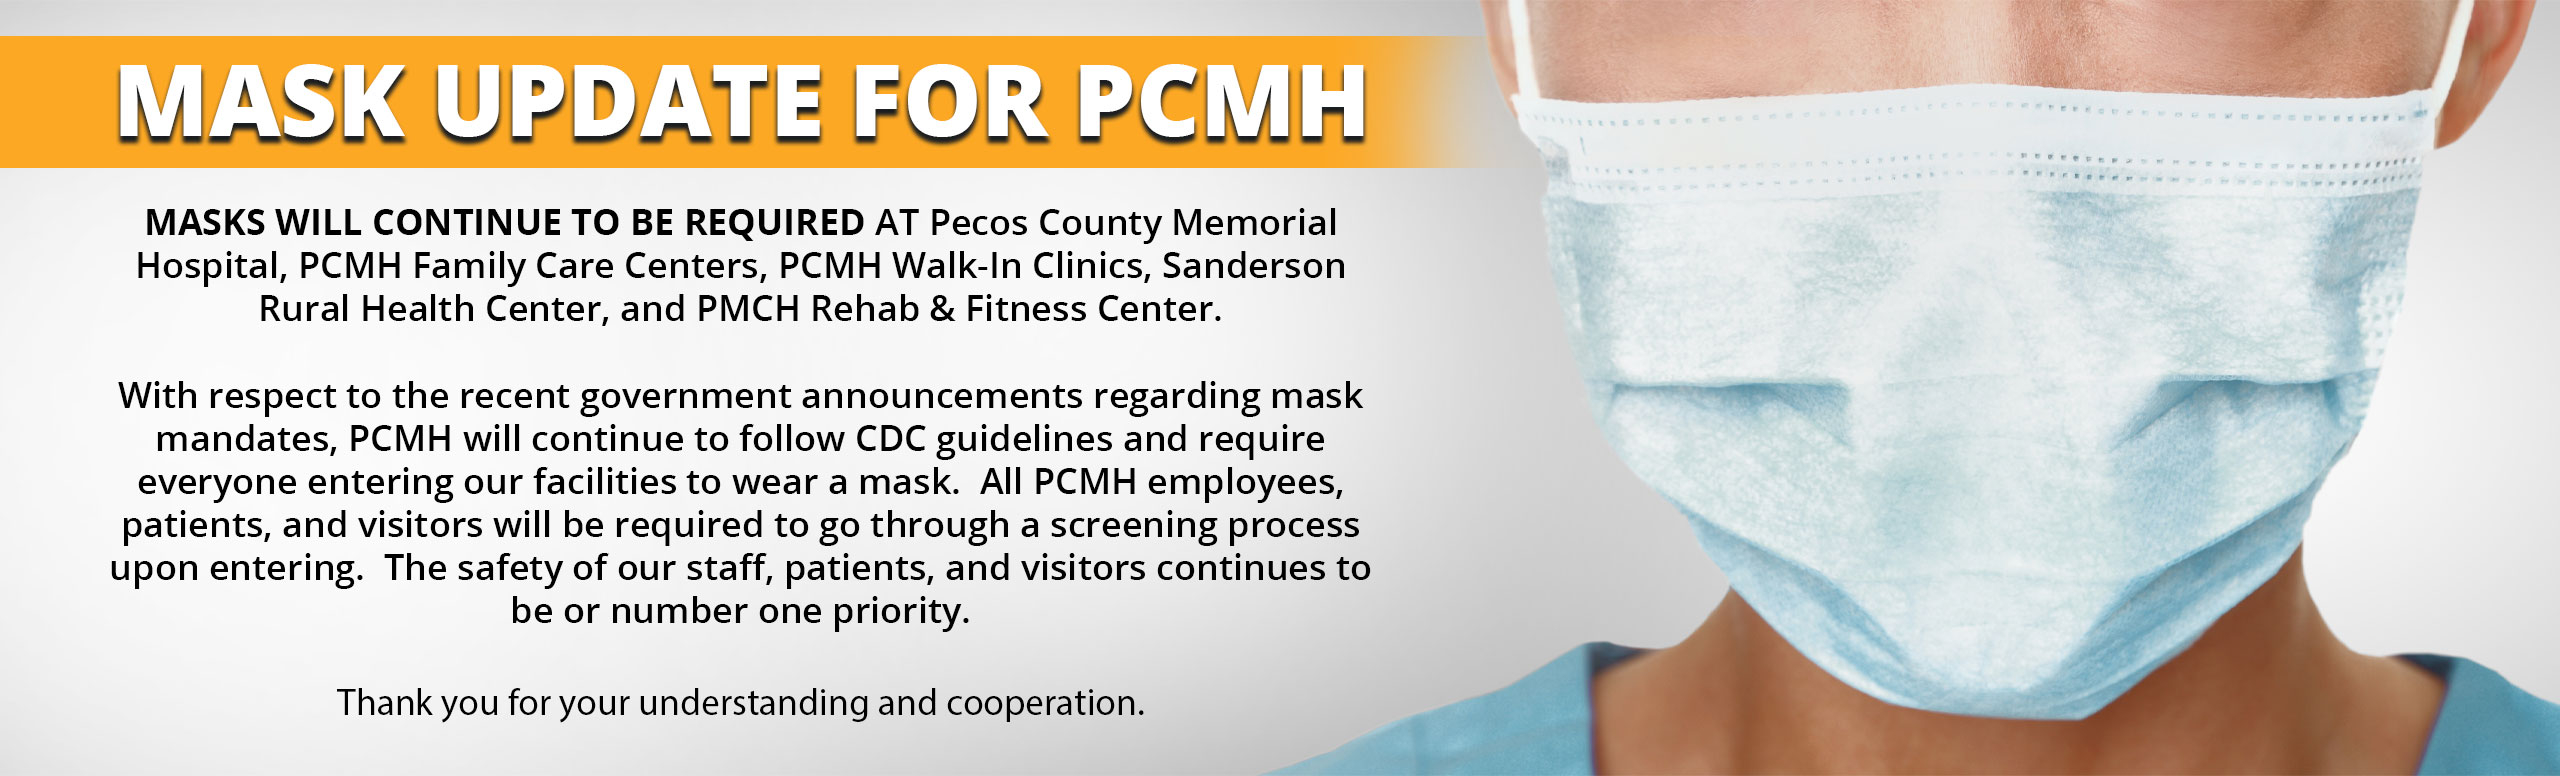 MASKS WILL CONTINUE TO BE REQUIRED AT Pecos County Memorial Hospital, PCMH Family Care Centers, PCMH Walk-In Clinics, Sanderson Rural Health Center, and PMCH Rehab & Fitness Center.   With respect to the recent government announcements regarding mask mandates, PCMH will continue to follow CDC guidelines and require everyone entering our facilities to wear a mask.  All PCMH employees, patients, and visitors will be required to go through a screening process upon entering.  The safety of our staff, patients, and visitors continues to be or number one priority.   Thank you for your understanding and cooperation.